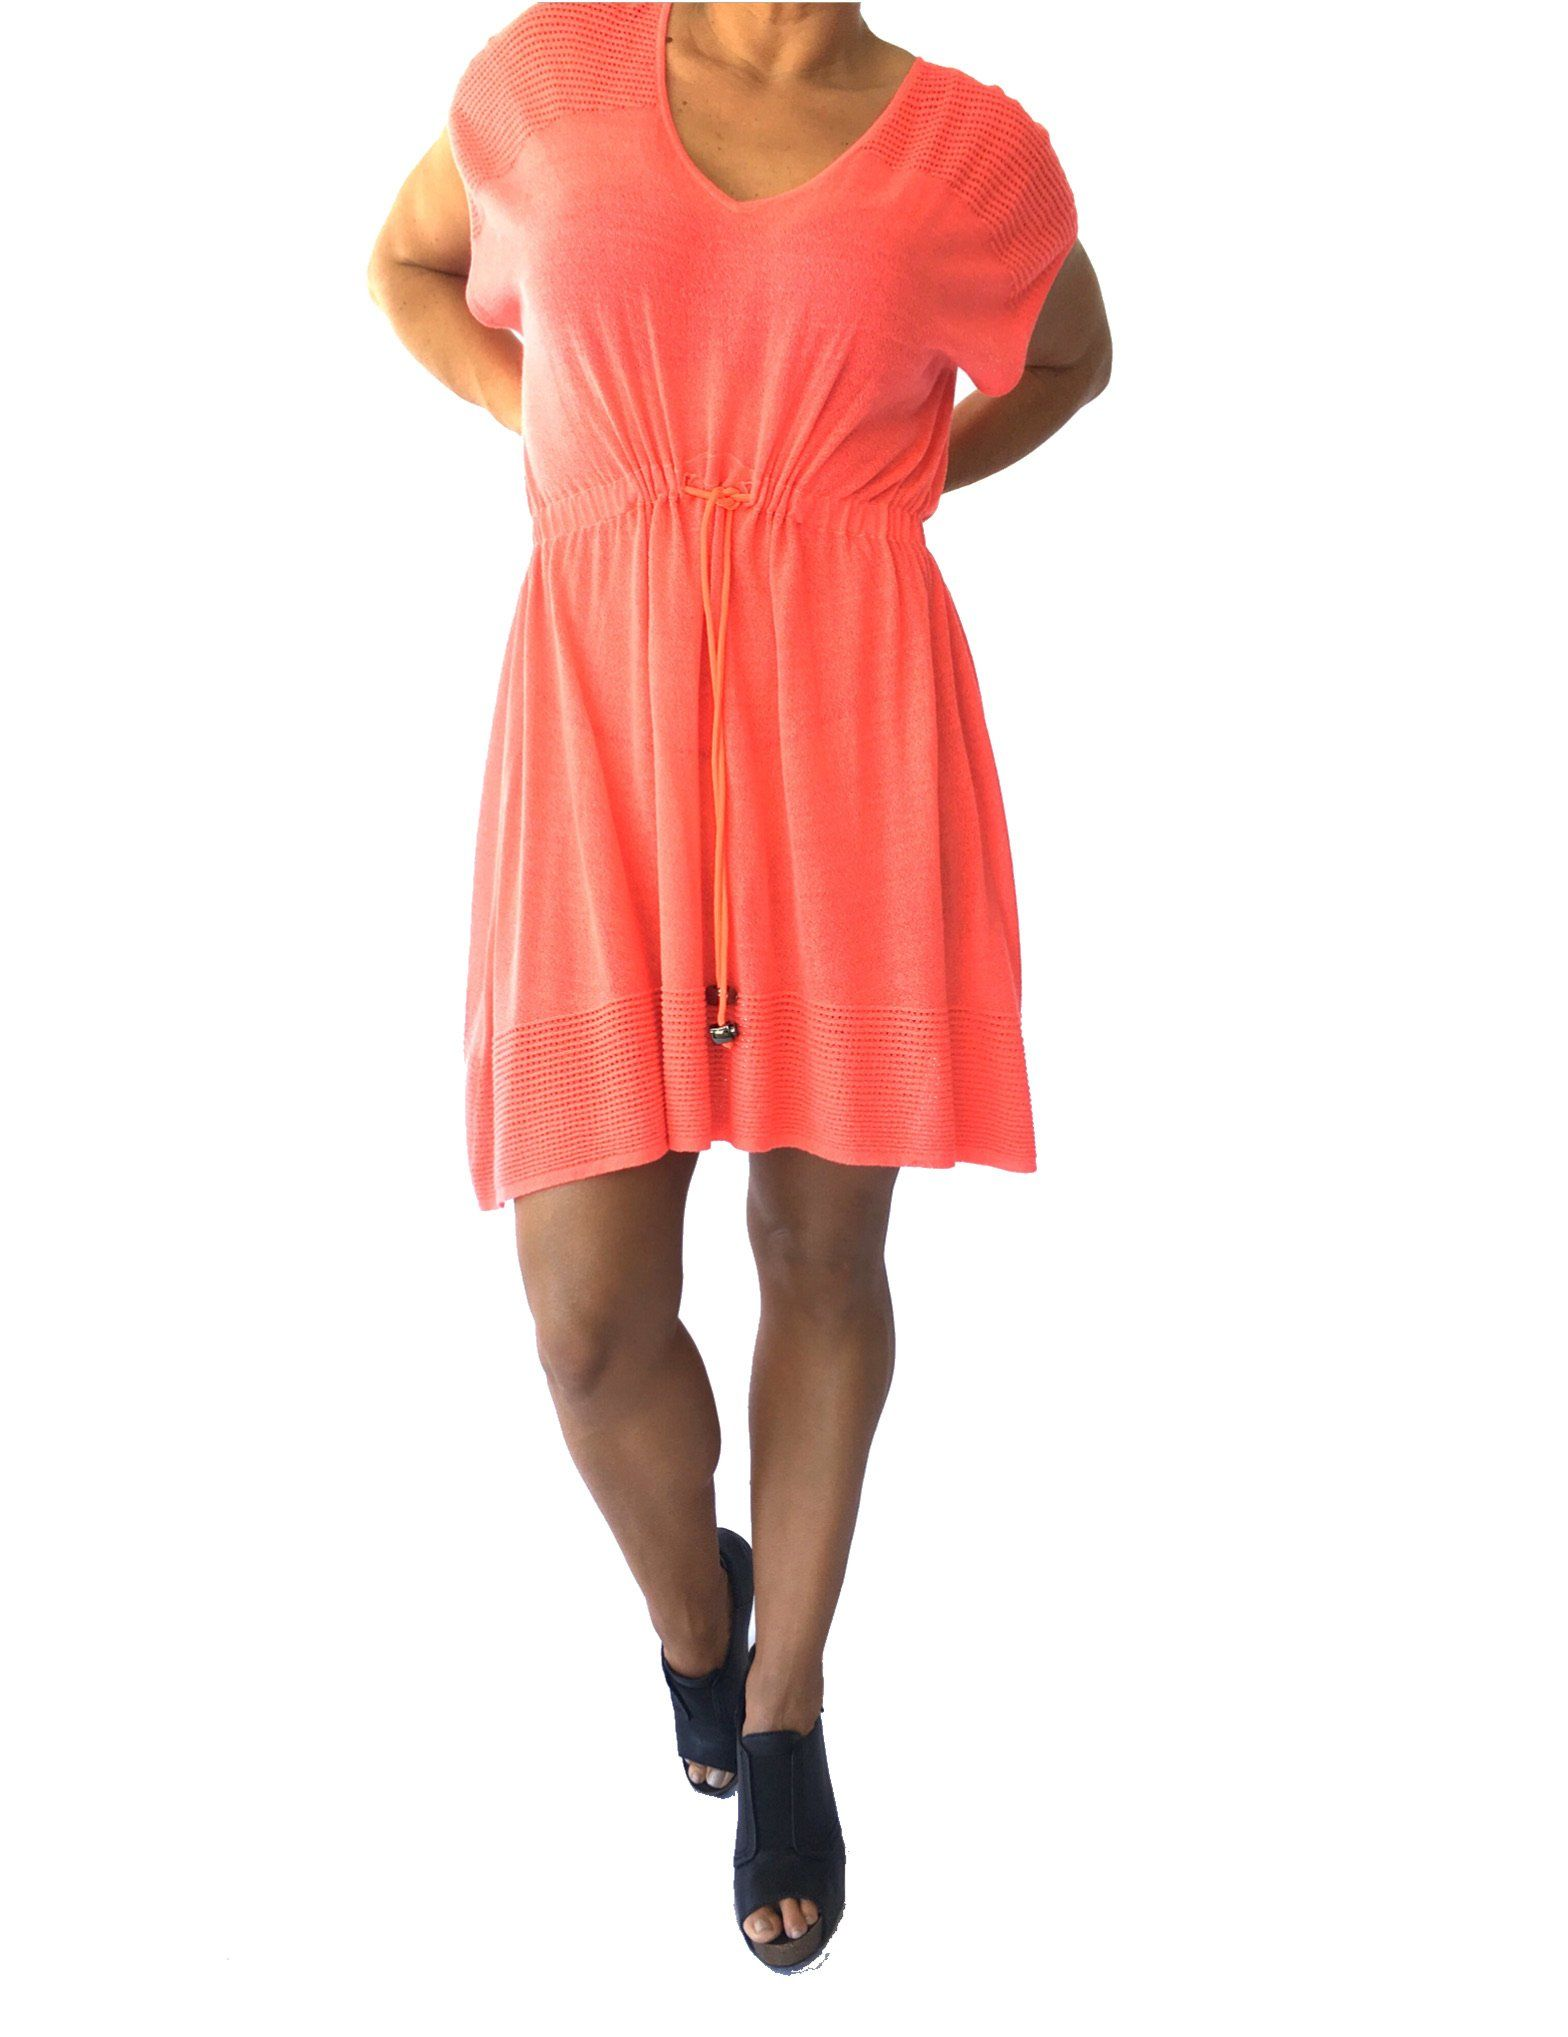 Milly toggle tie pointelle dress small fluorescent melon v neck